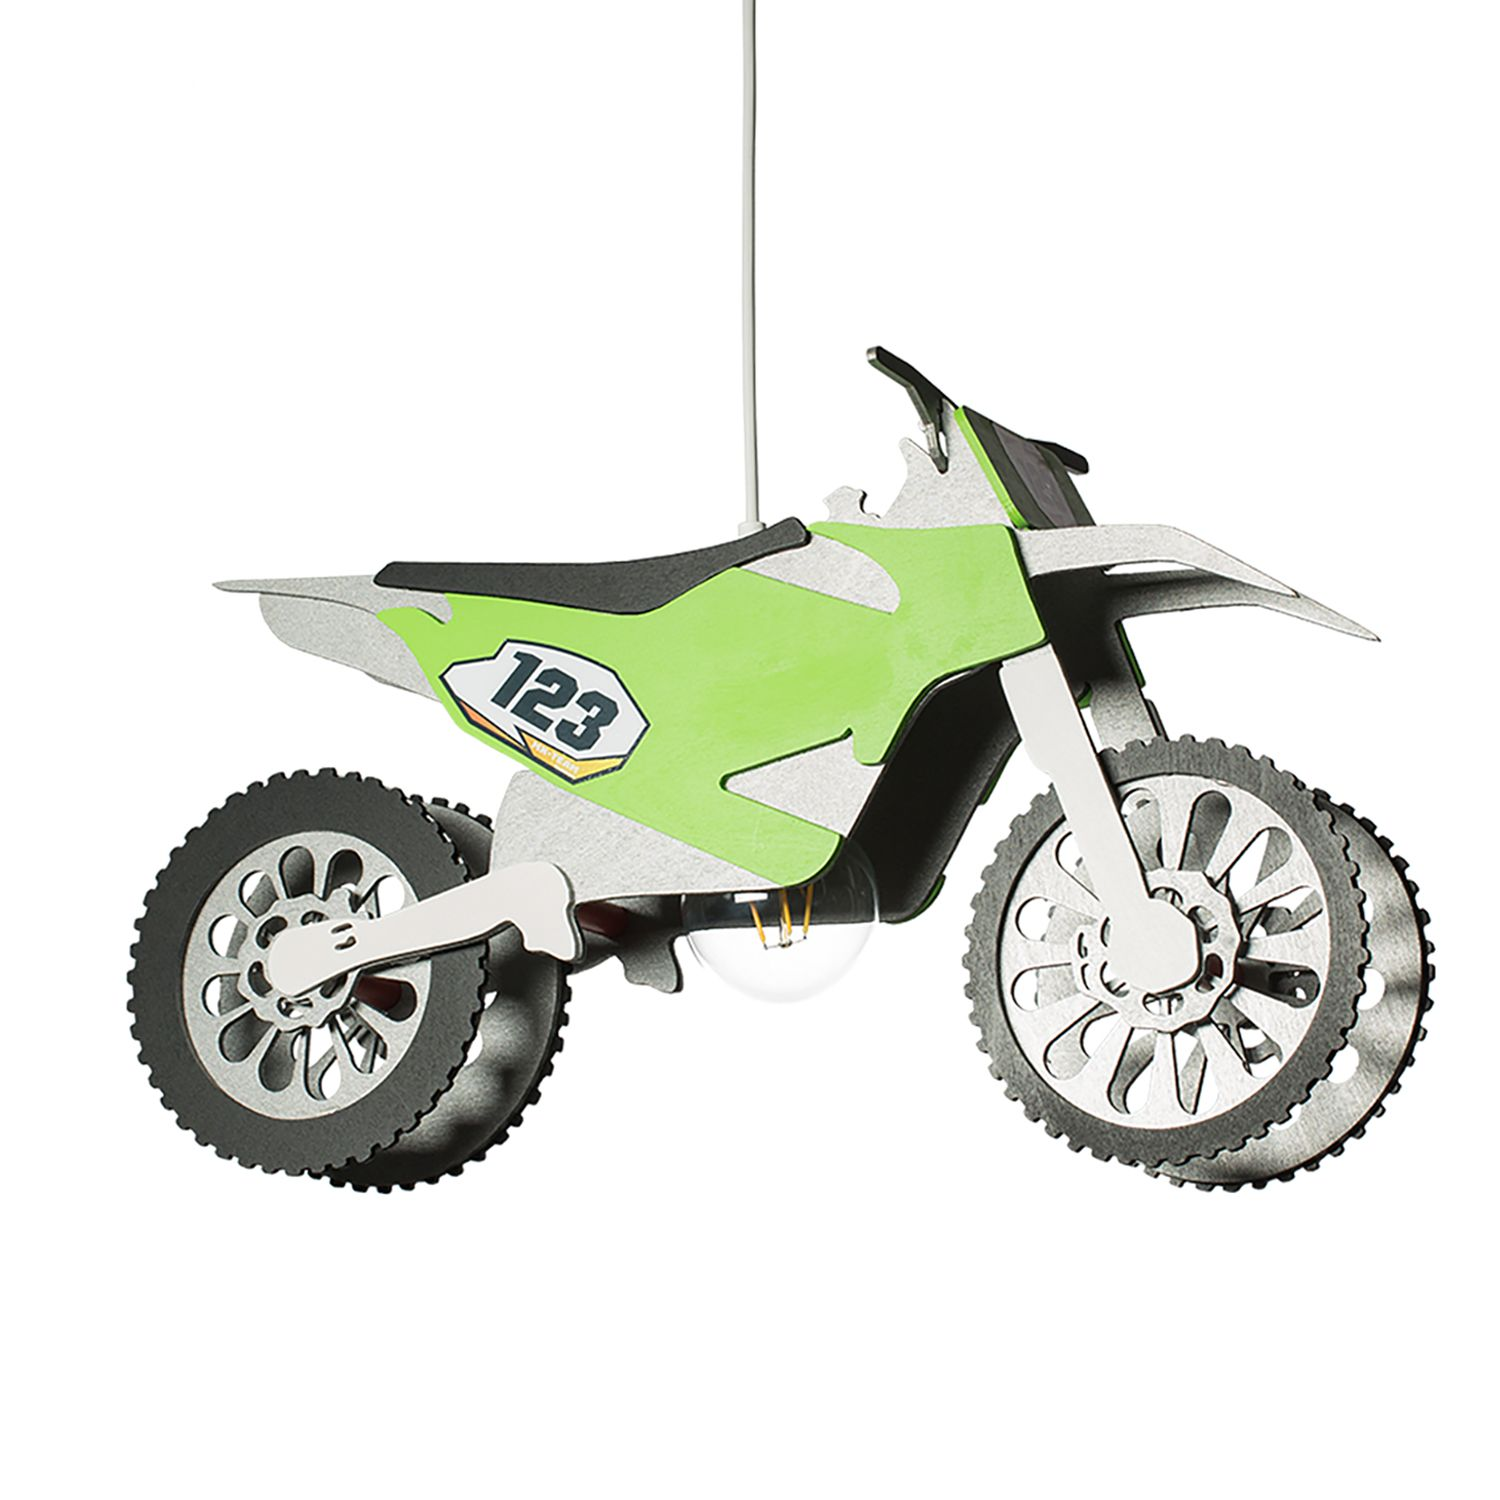 Suspension Motocrossmaschine